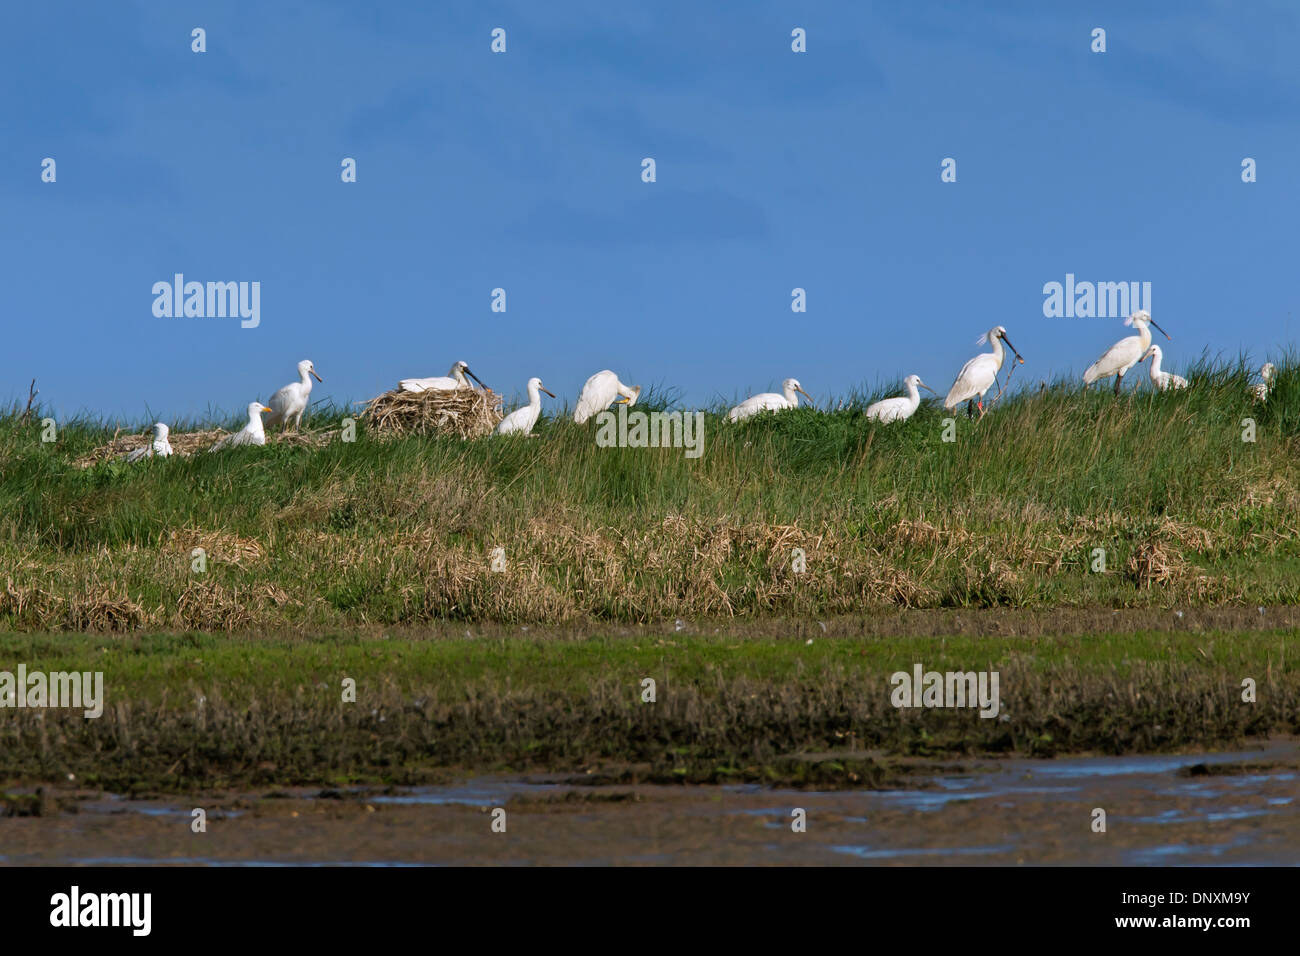 Eurasian Spoonbill / Common Spoonbills (Platalea leucorodia) colony, showing nesting birds and juveniles, Wadden Sea, Germany - Stock Image